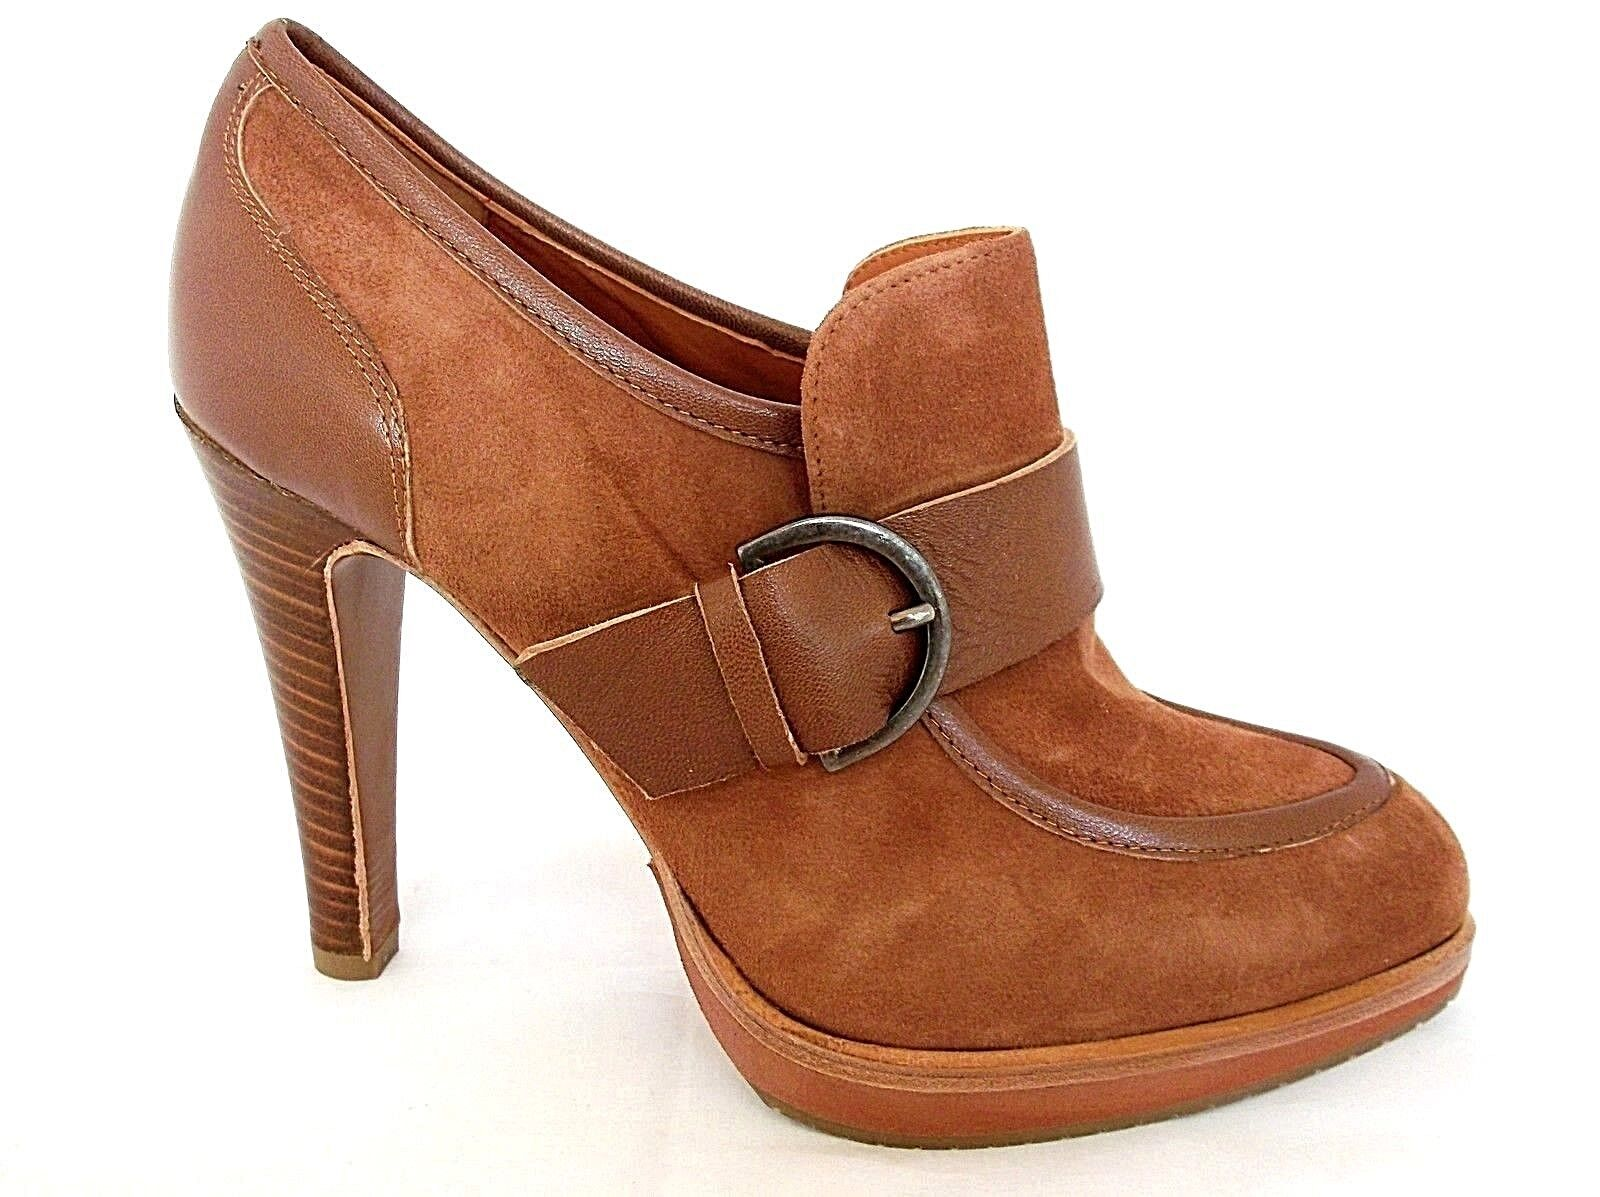 THE SELLER LADIES CAMOSCIO COGNAC SUEDE LEATHER HEELS schuhe damen UK 7 - EUR 40